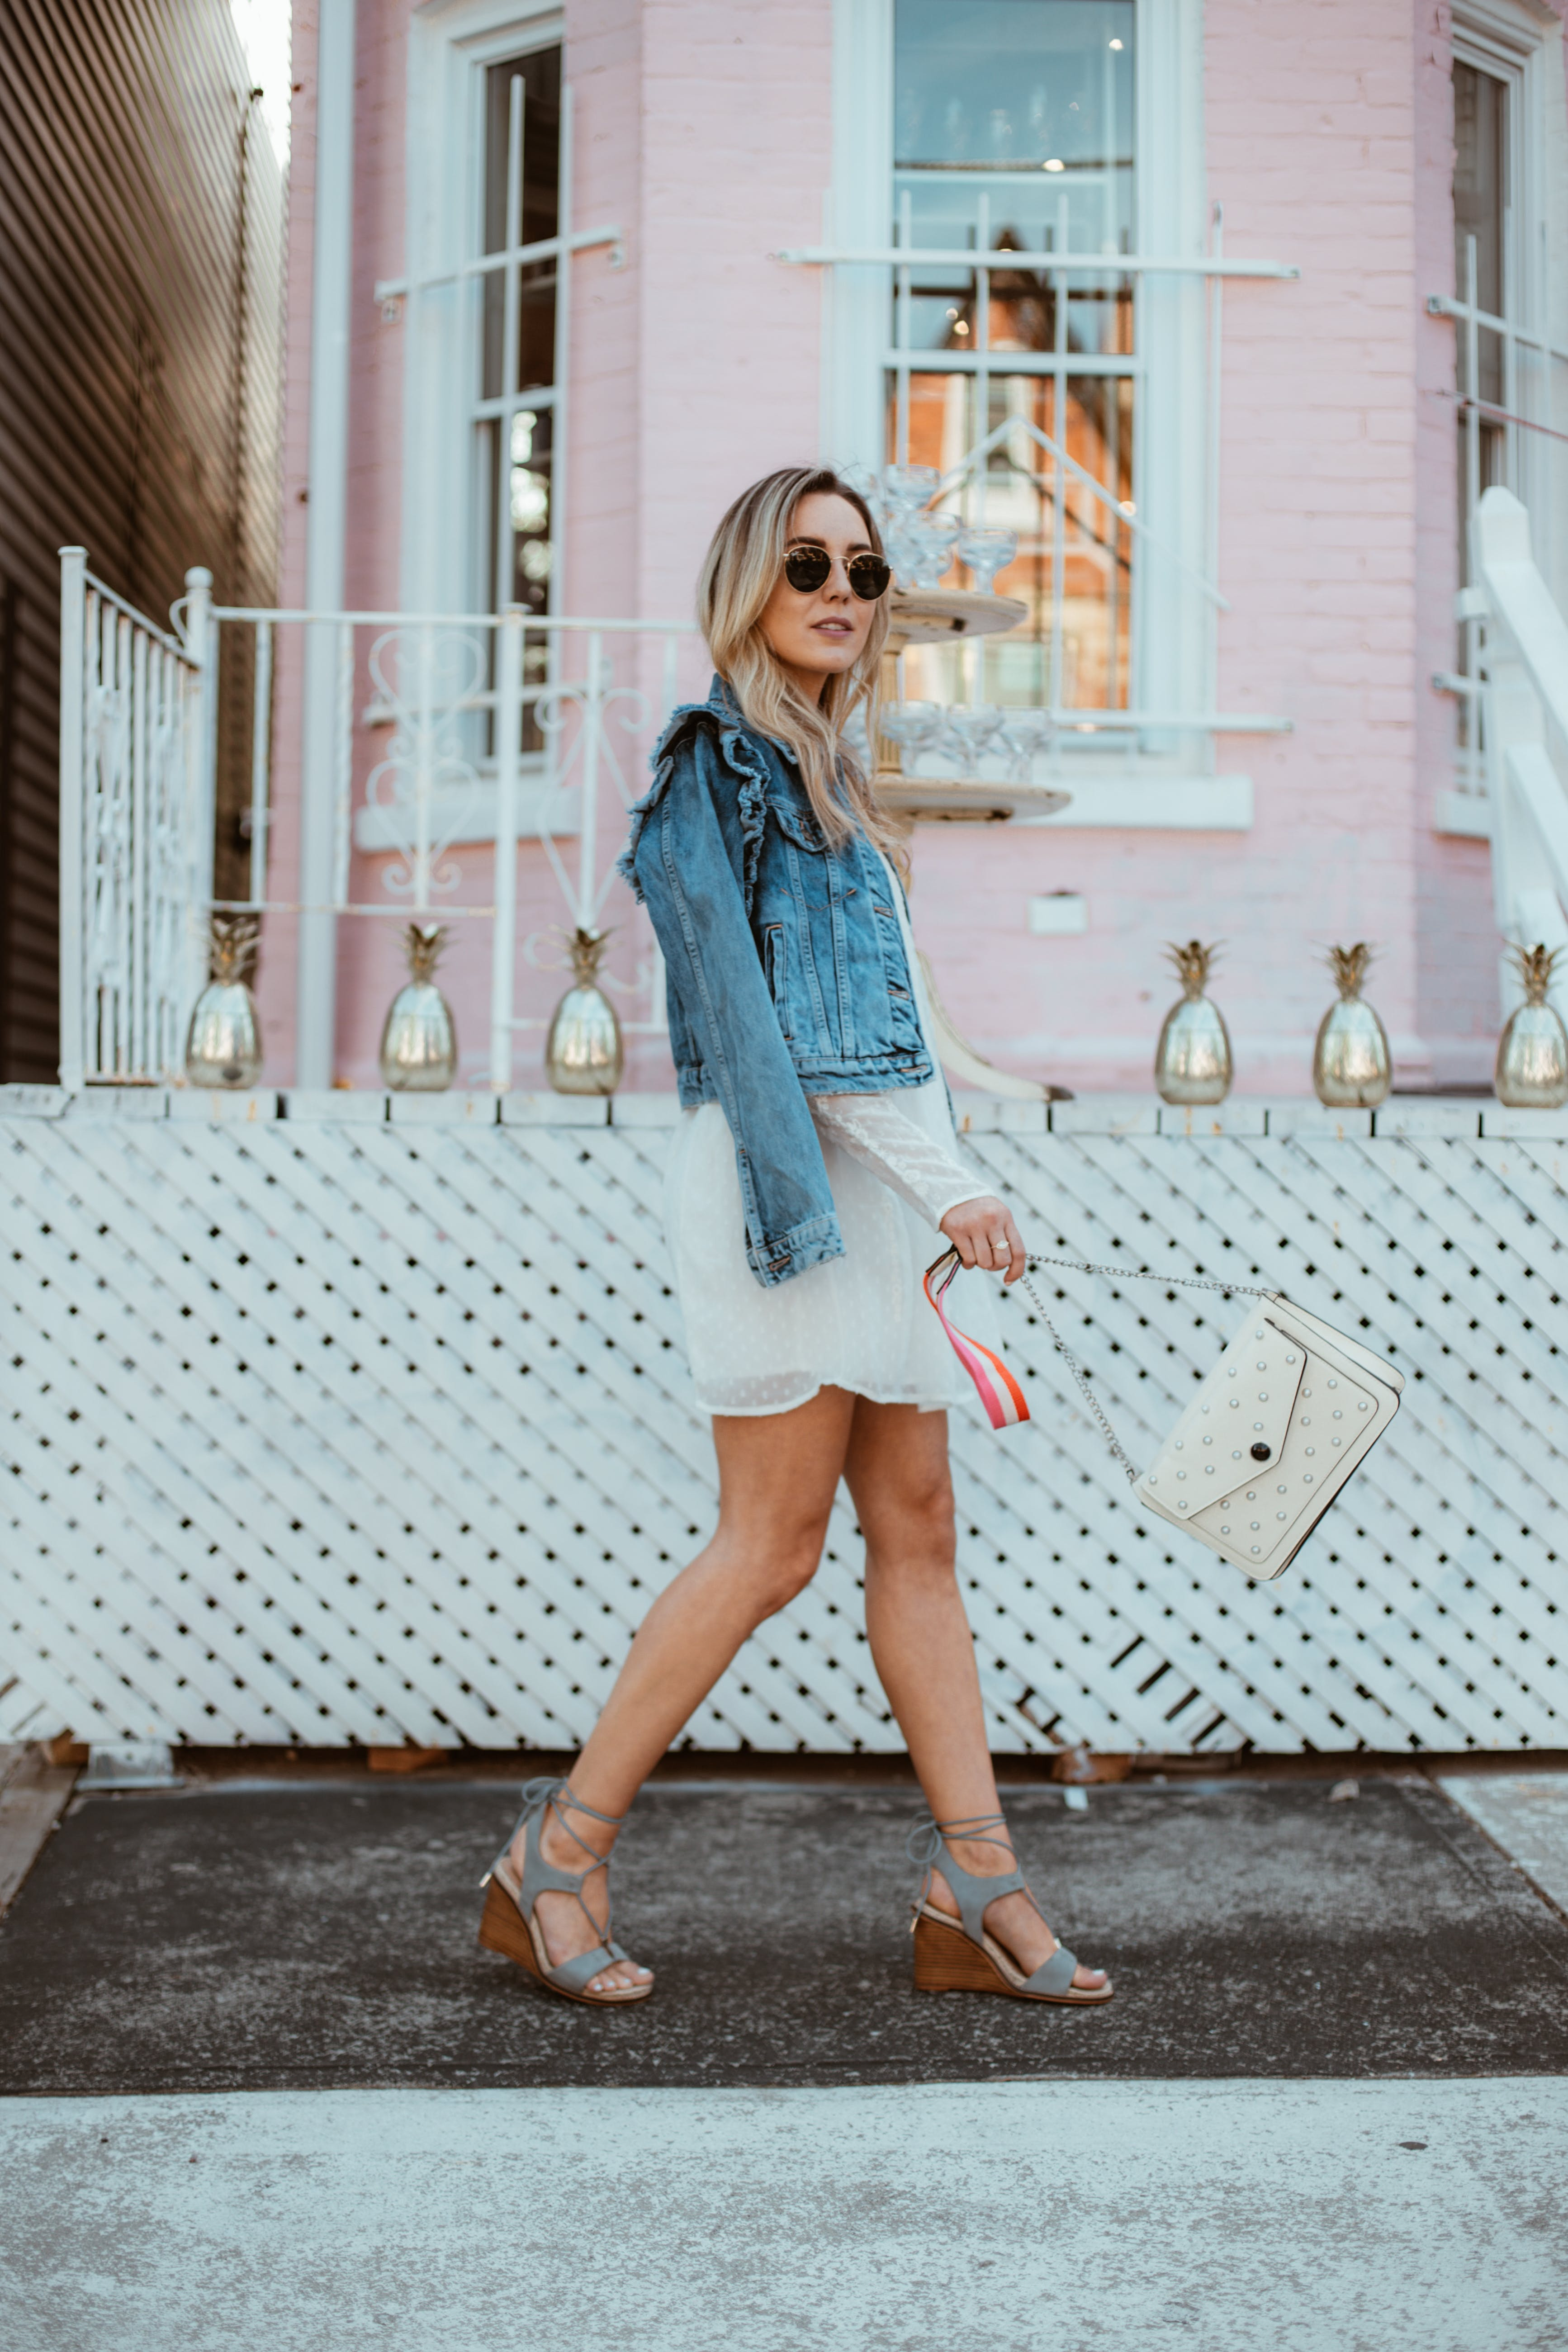 Women's White Cocktail Dress and Blue Denim Jacket Outfit